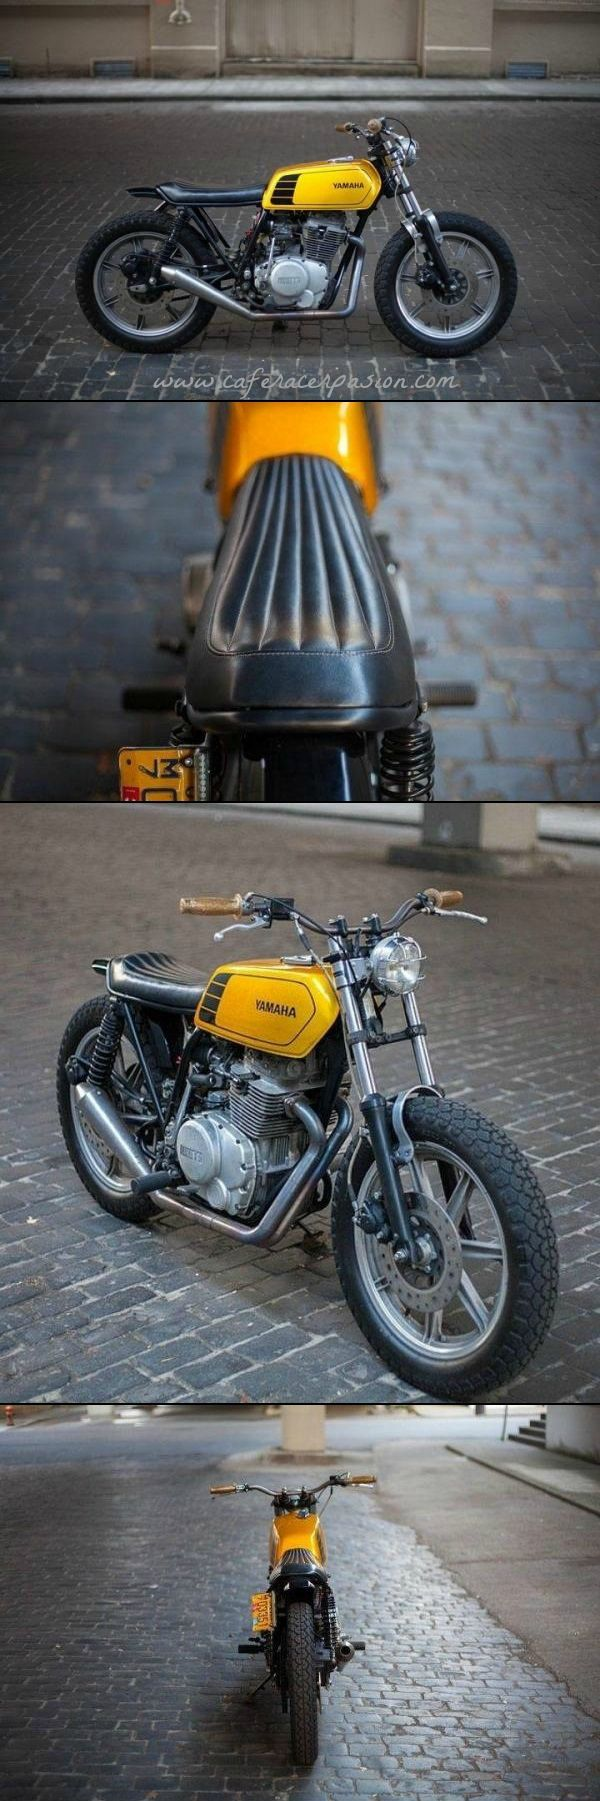 Yamaha XS400 Street Tracker by New Church Moto #motorcycles #streettracker #motos | caferacerpasion.com